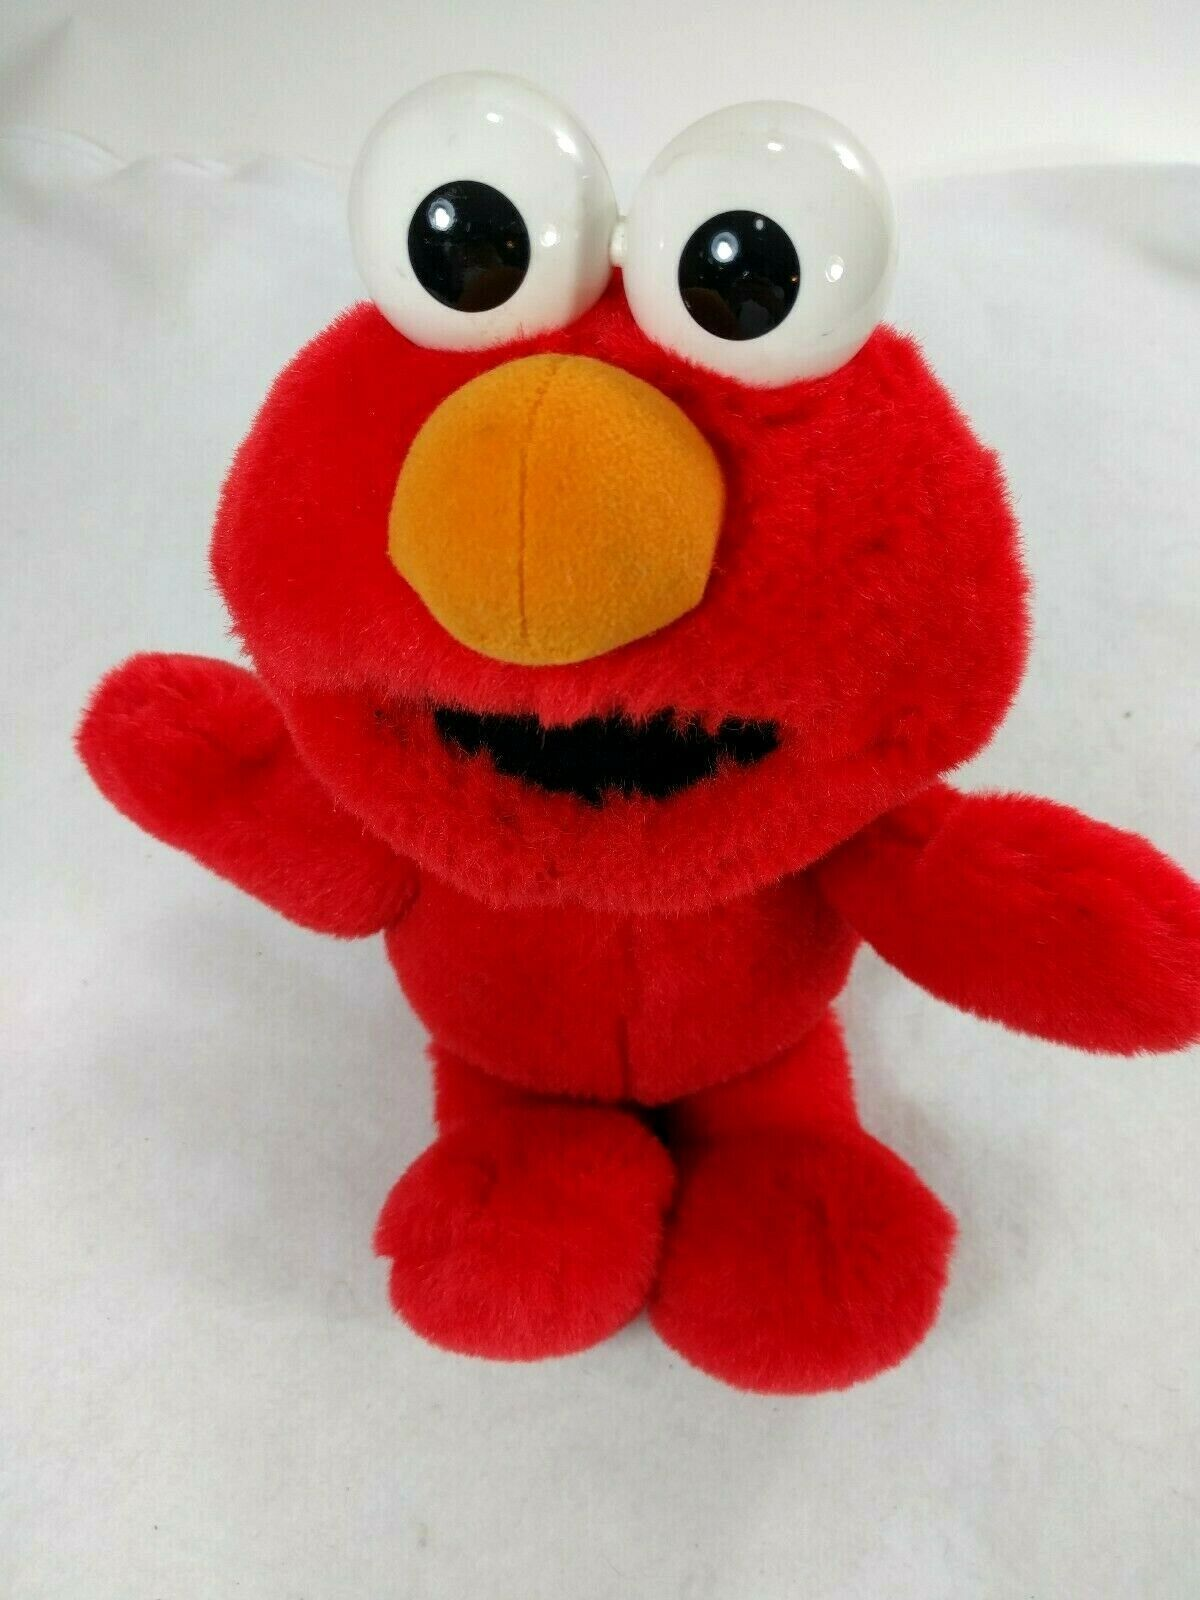 Primary image for Tyco Tickle Me Elmo Sesame Street Elmo Jim Henson Production, Inc. 1997 1995